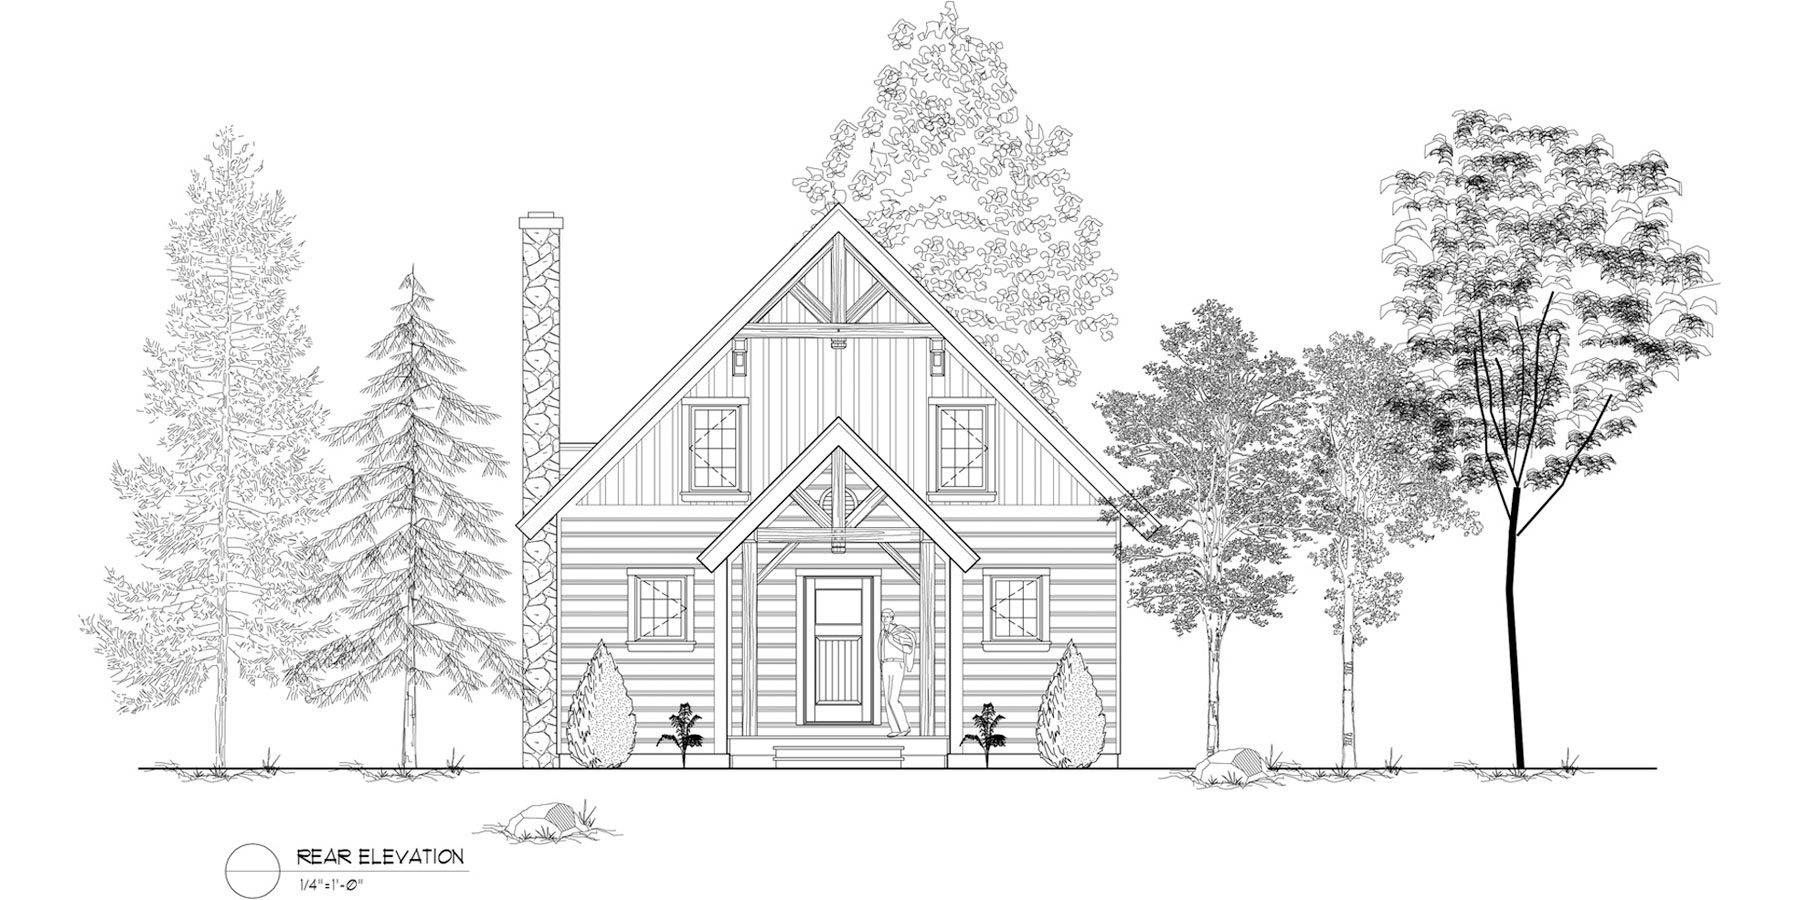 Normerica Timber Frames, House Plan, The Jackson 3605, Rear Elevation